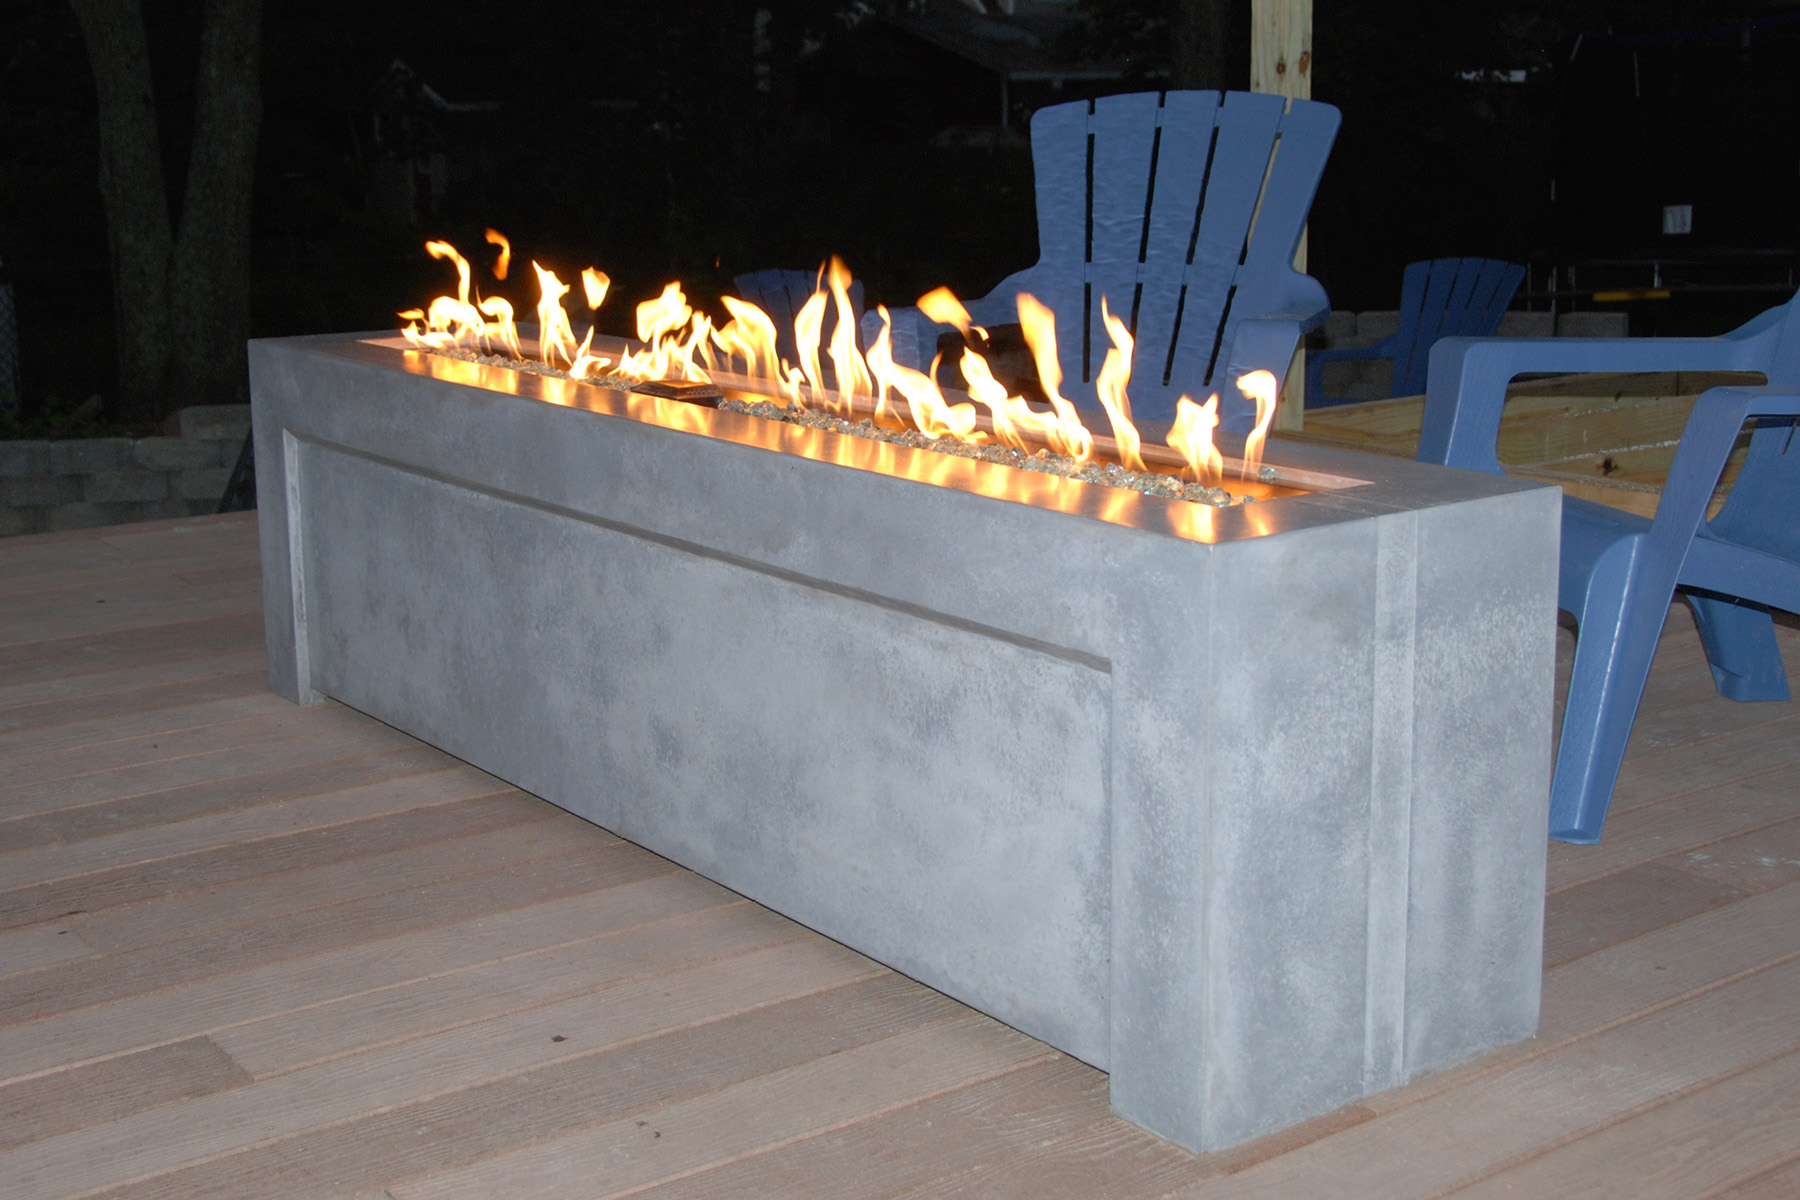 This modern inspired concrete fire pit is the perfect place to warm up on a chilly New Jersey night.